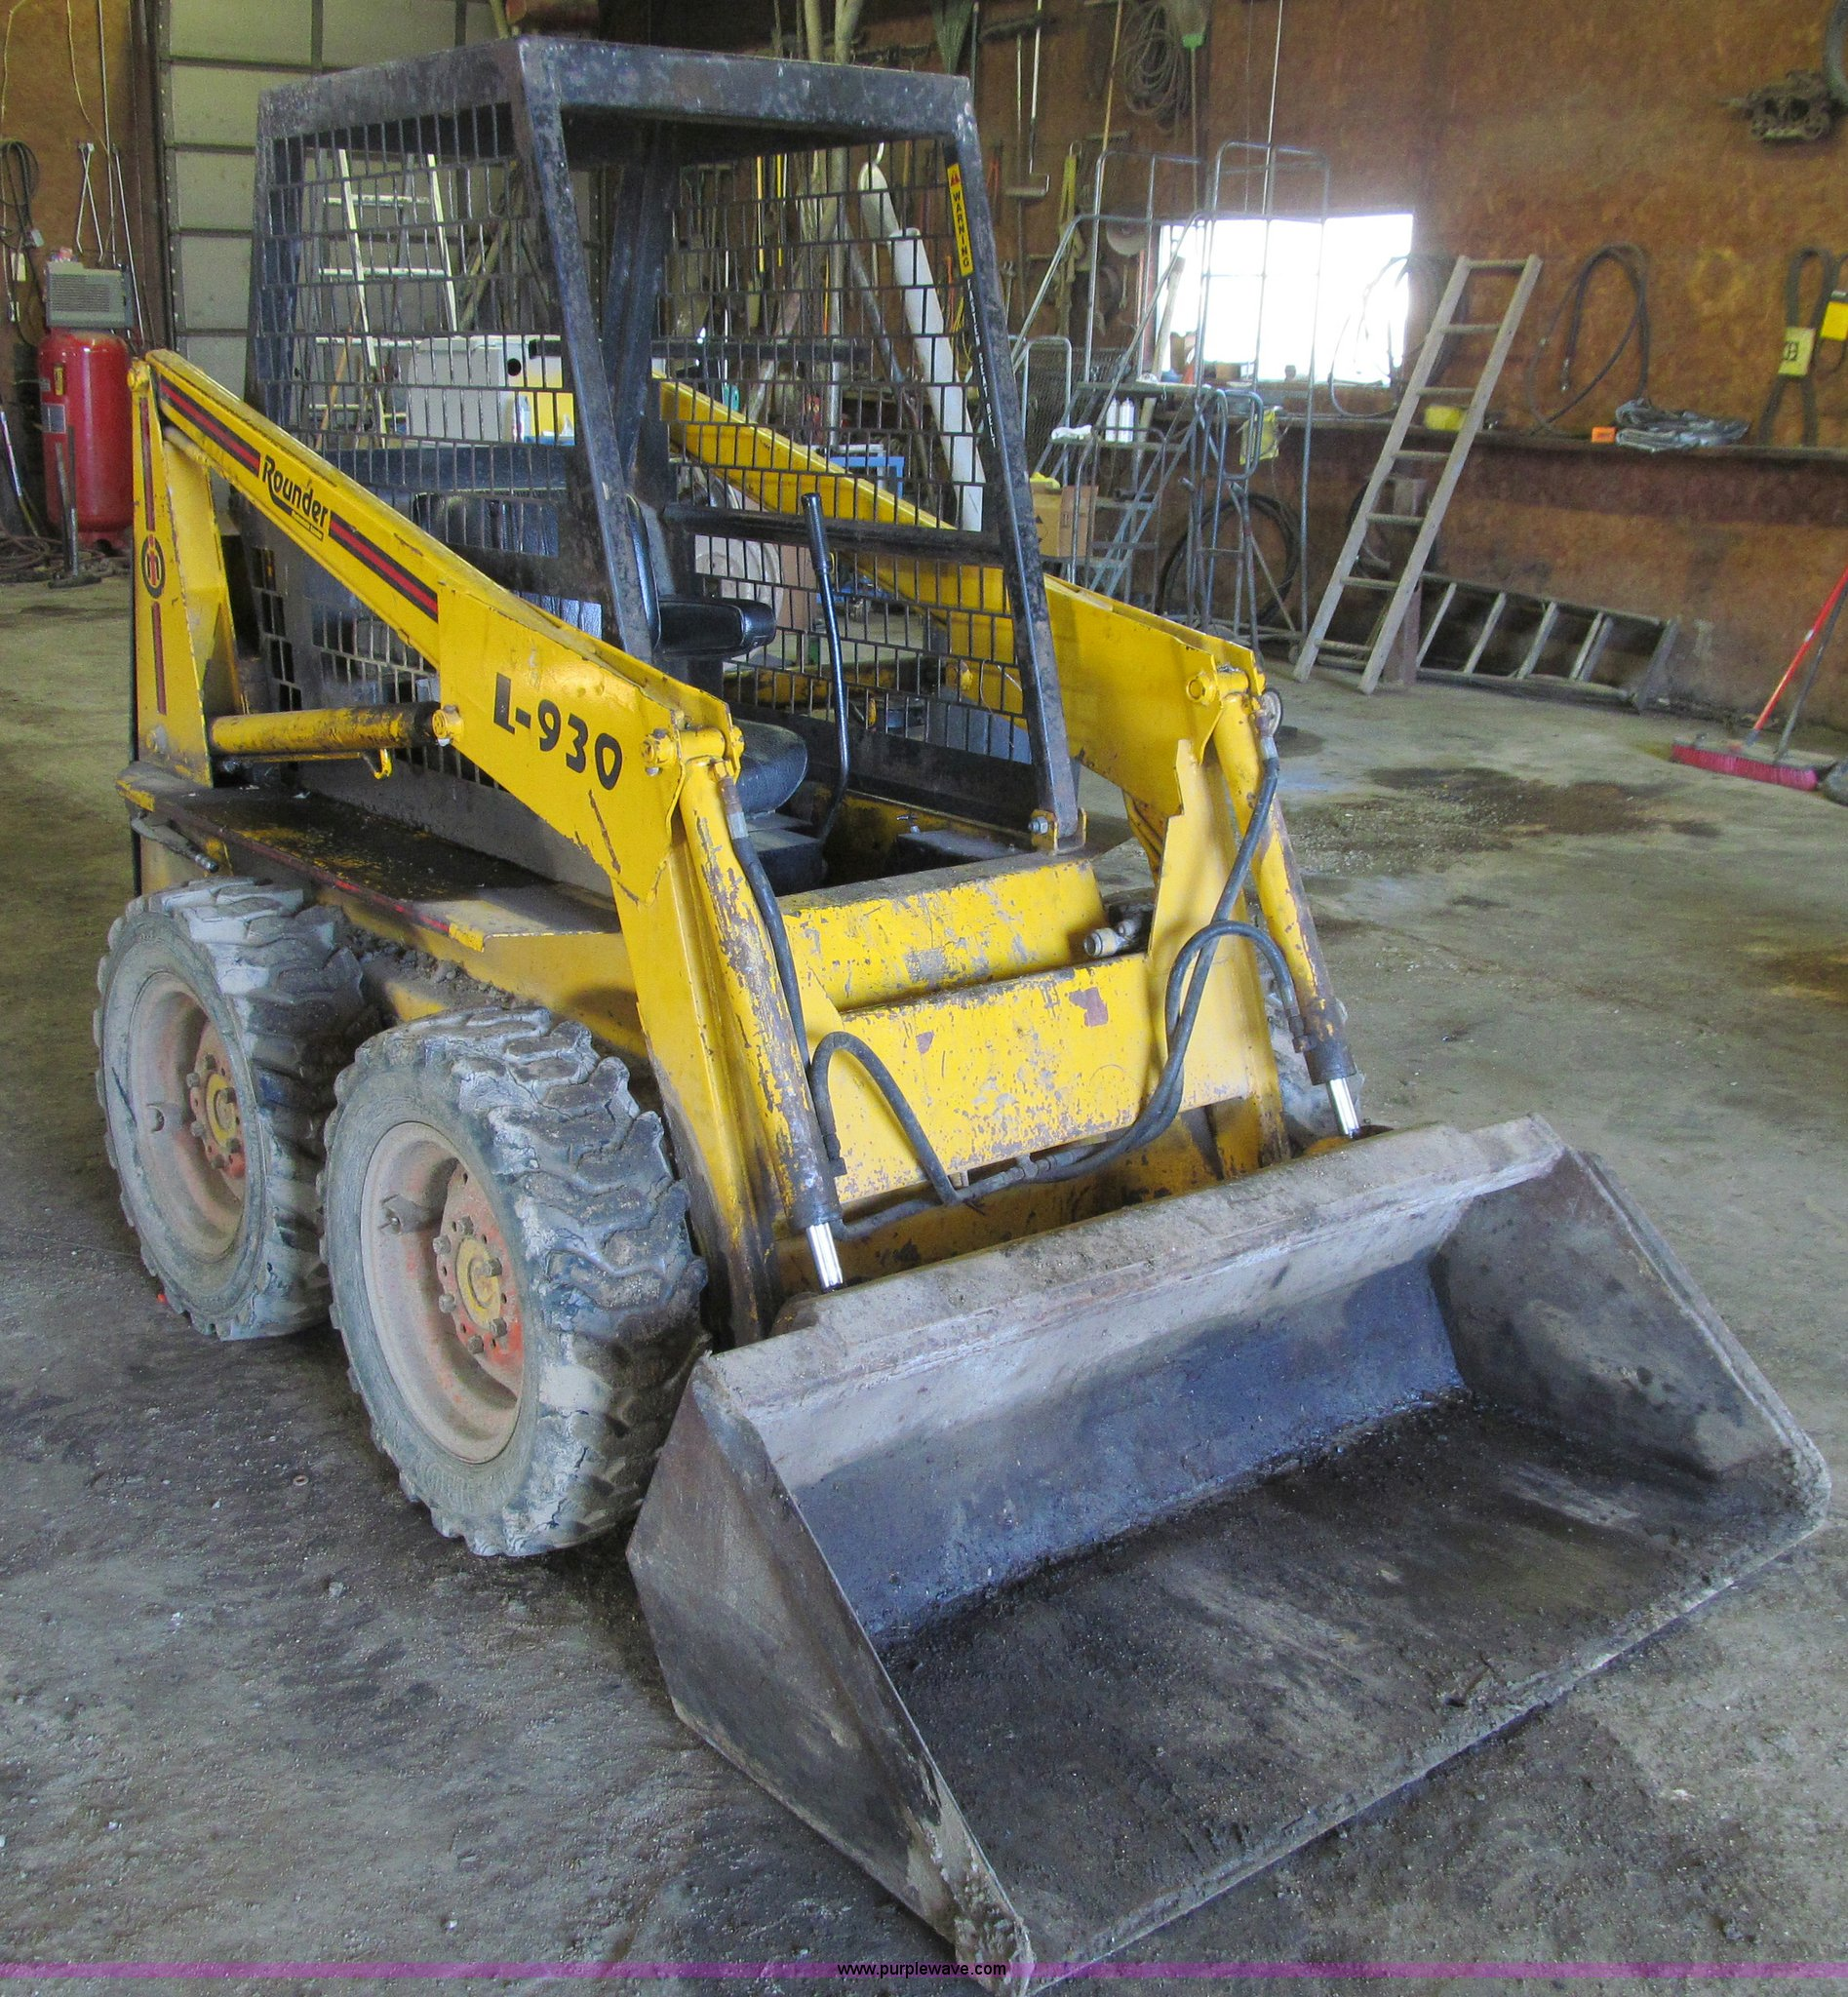 ... Prime Mover L930 Rounder skid steer Full size in new window